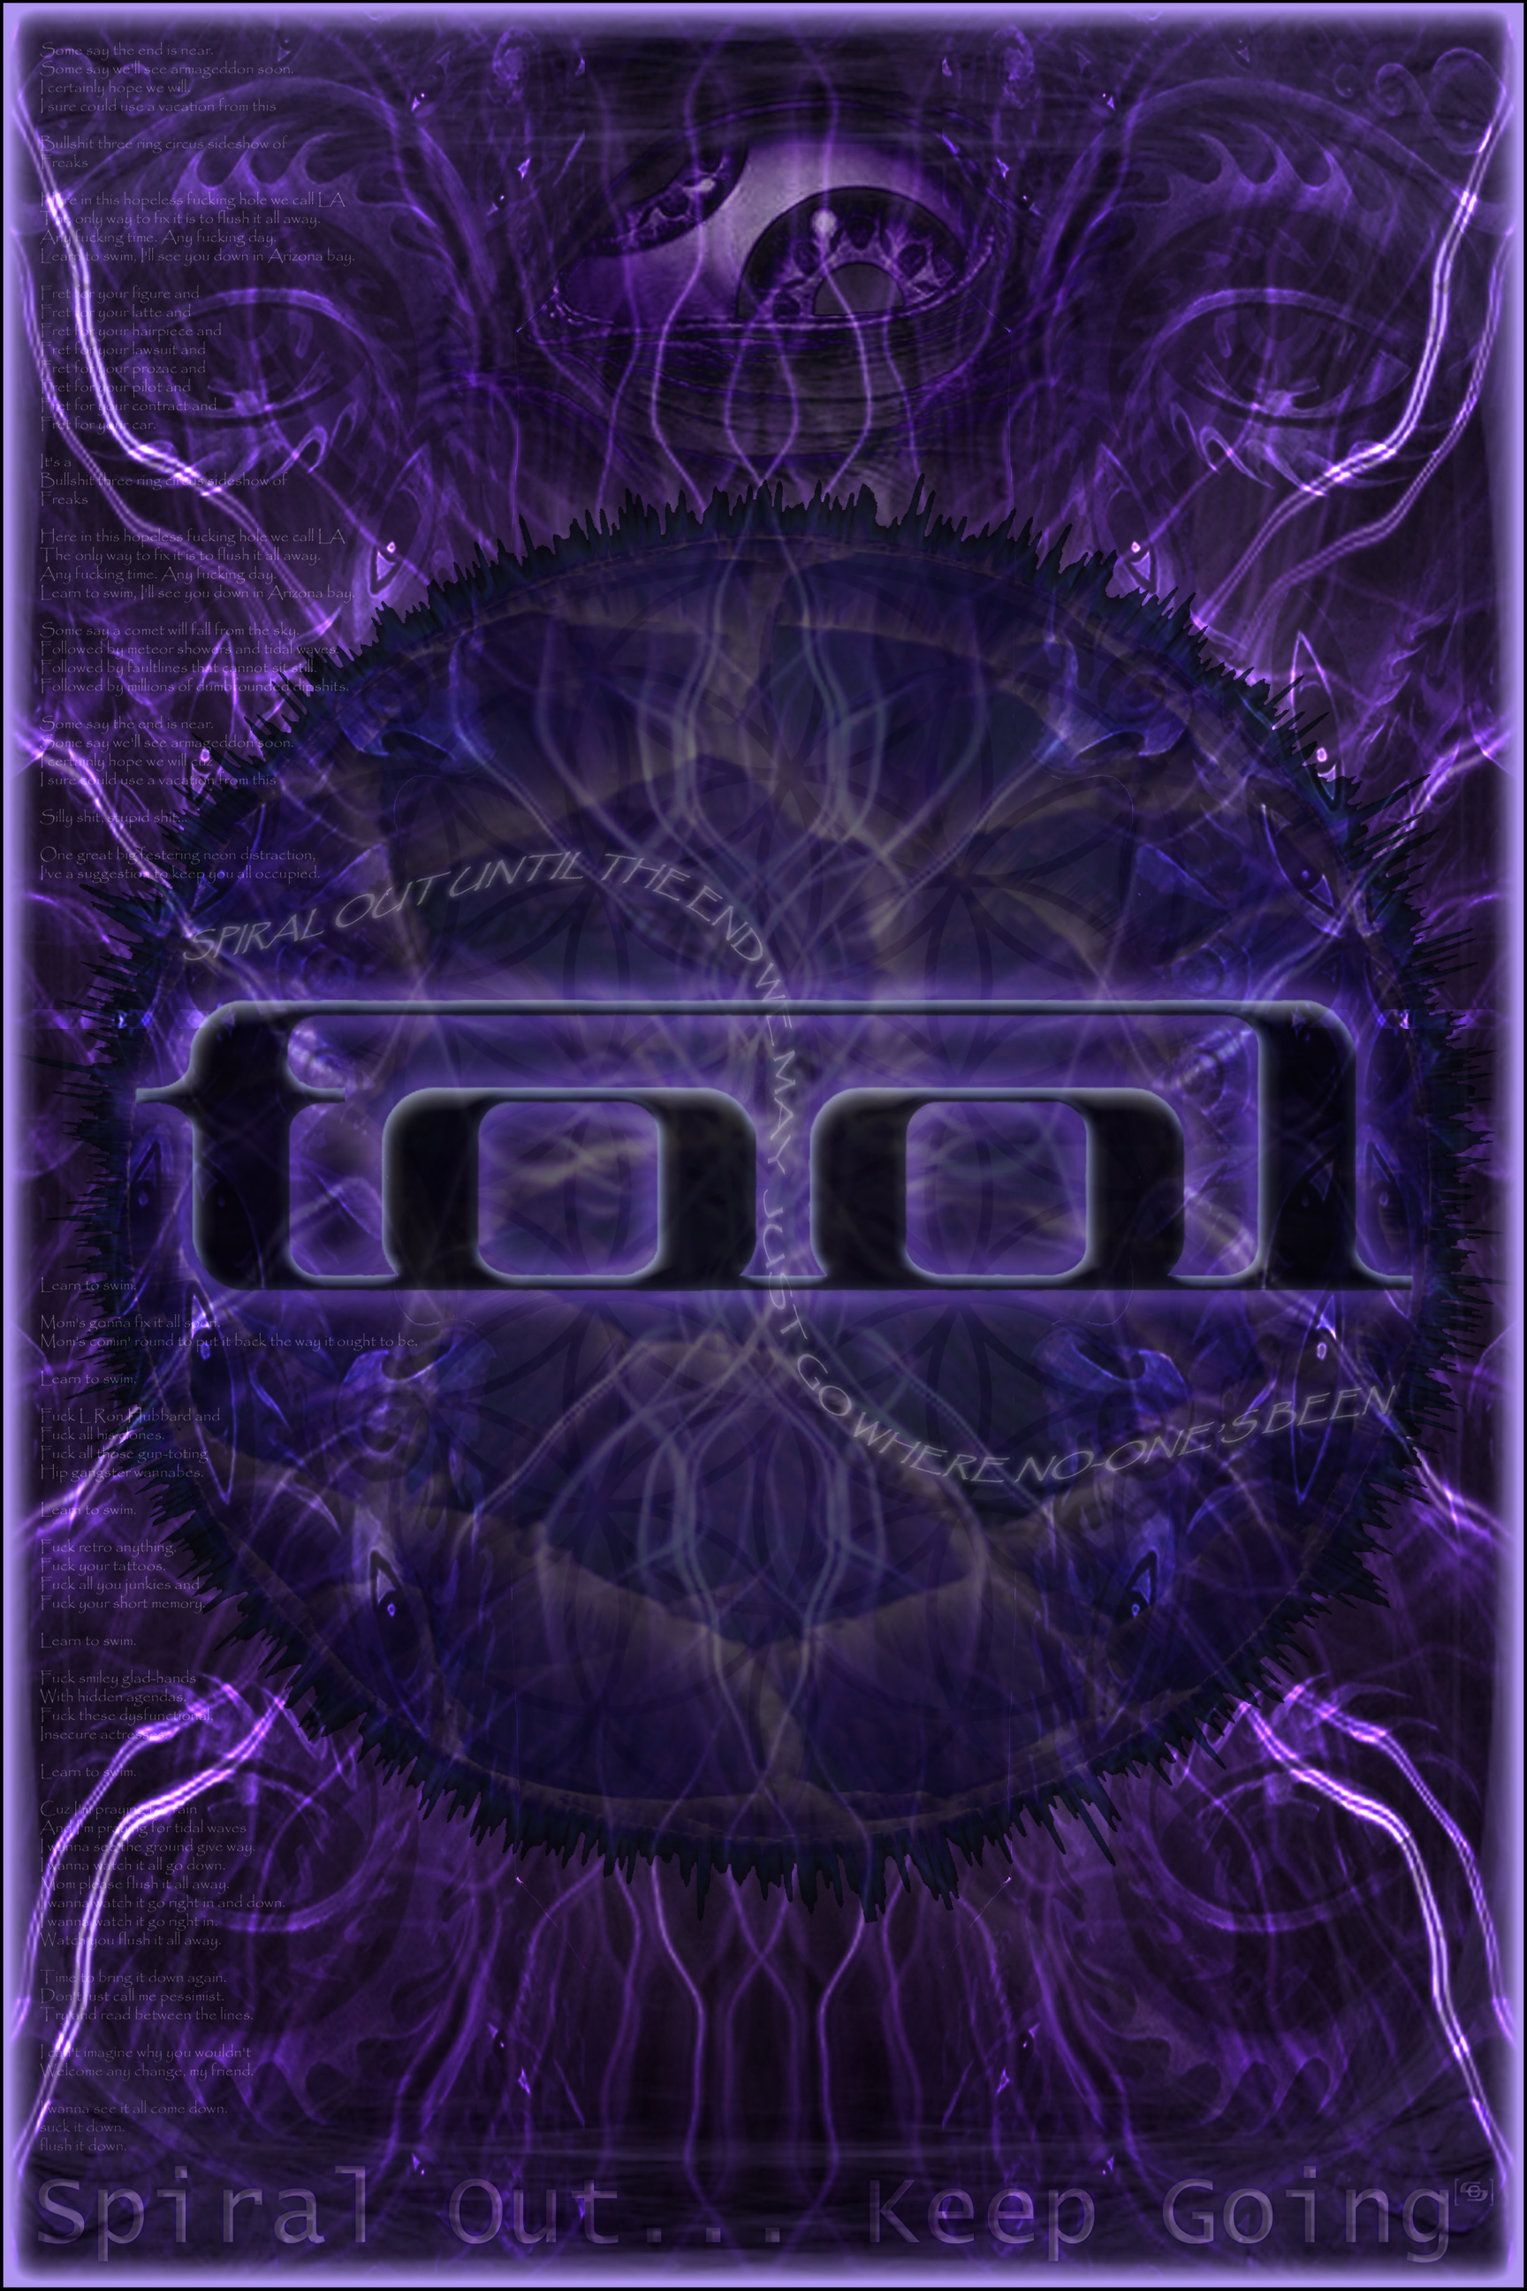 This Is A Tool Poster I Made I Tried To Incorporate Loads Of Things Reflected In Their Music The Famous Rolling Eye T Tool Band Artwork Tool Music Tool Band